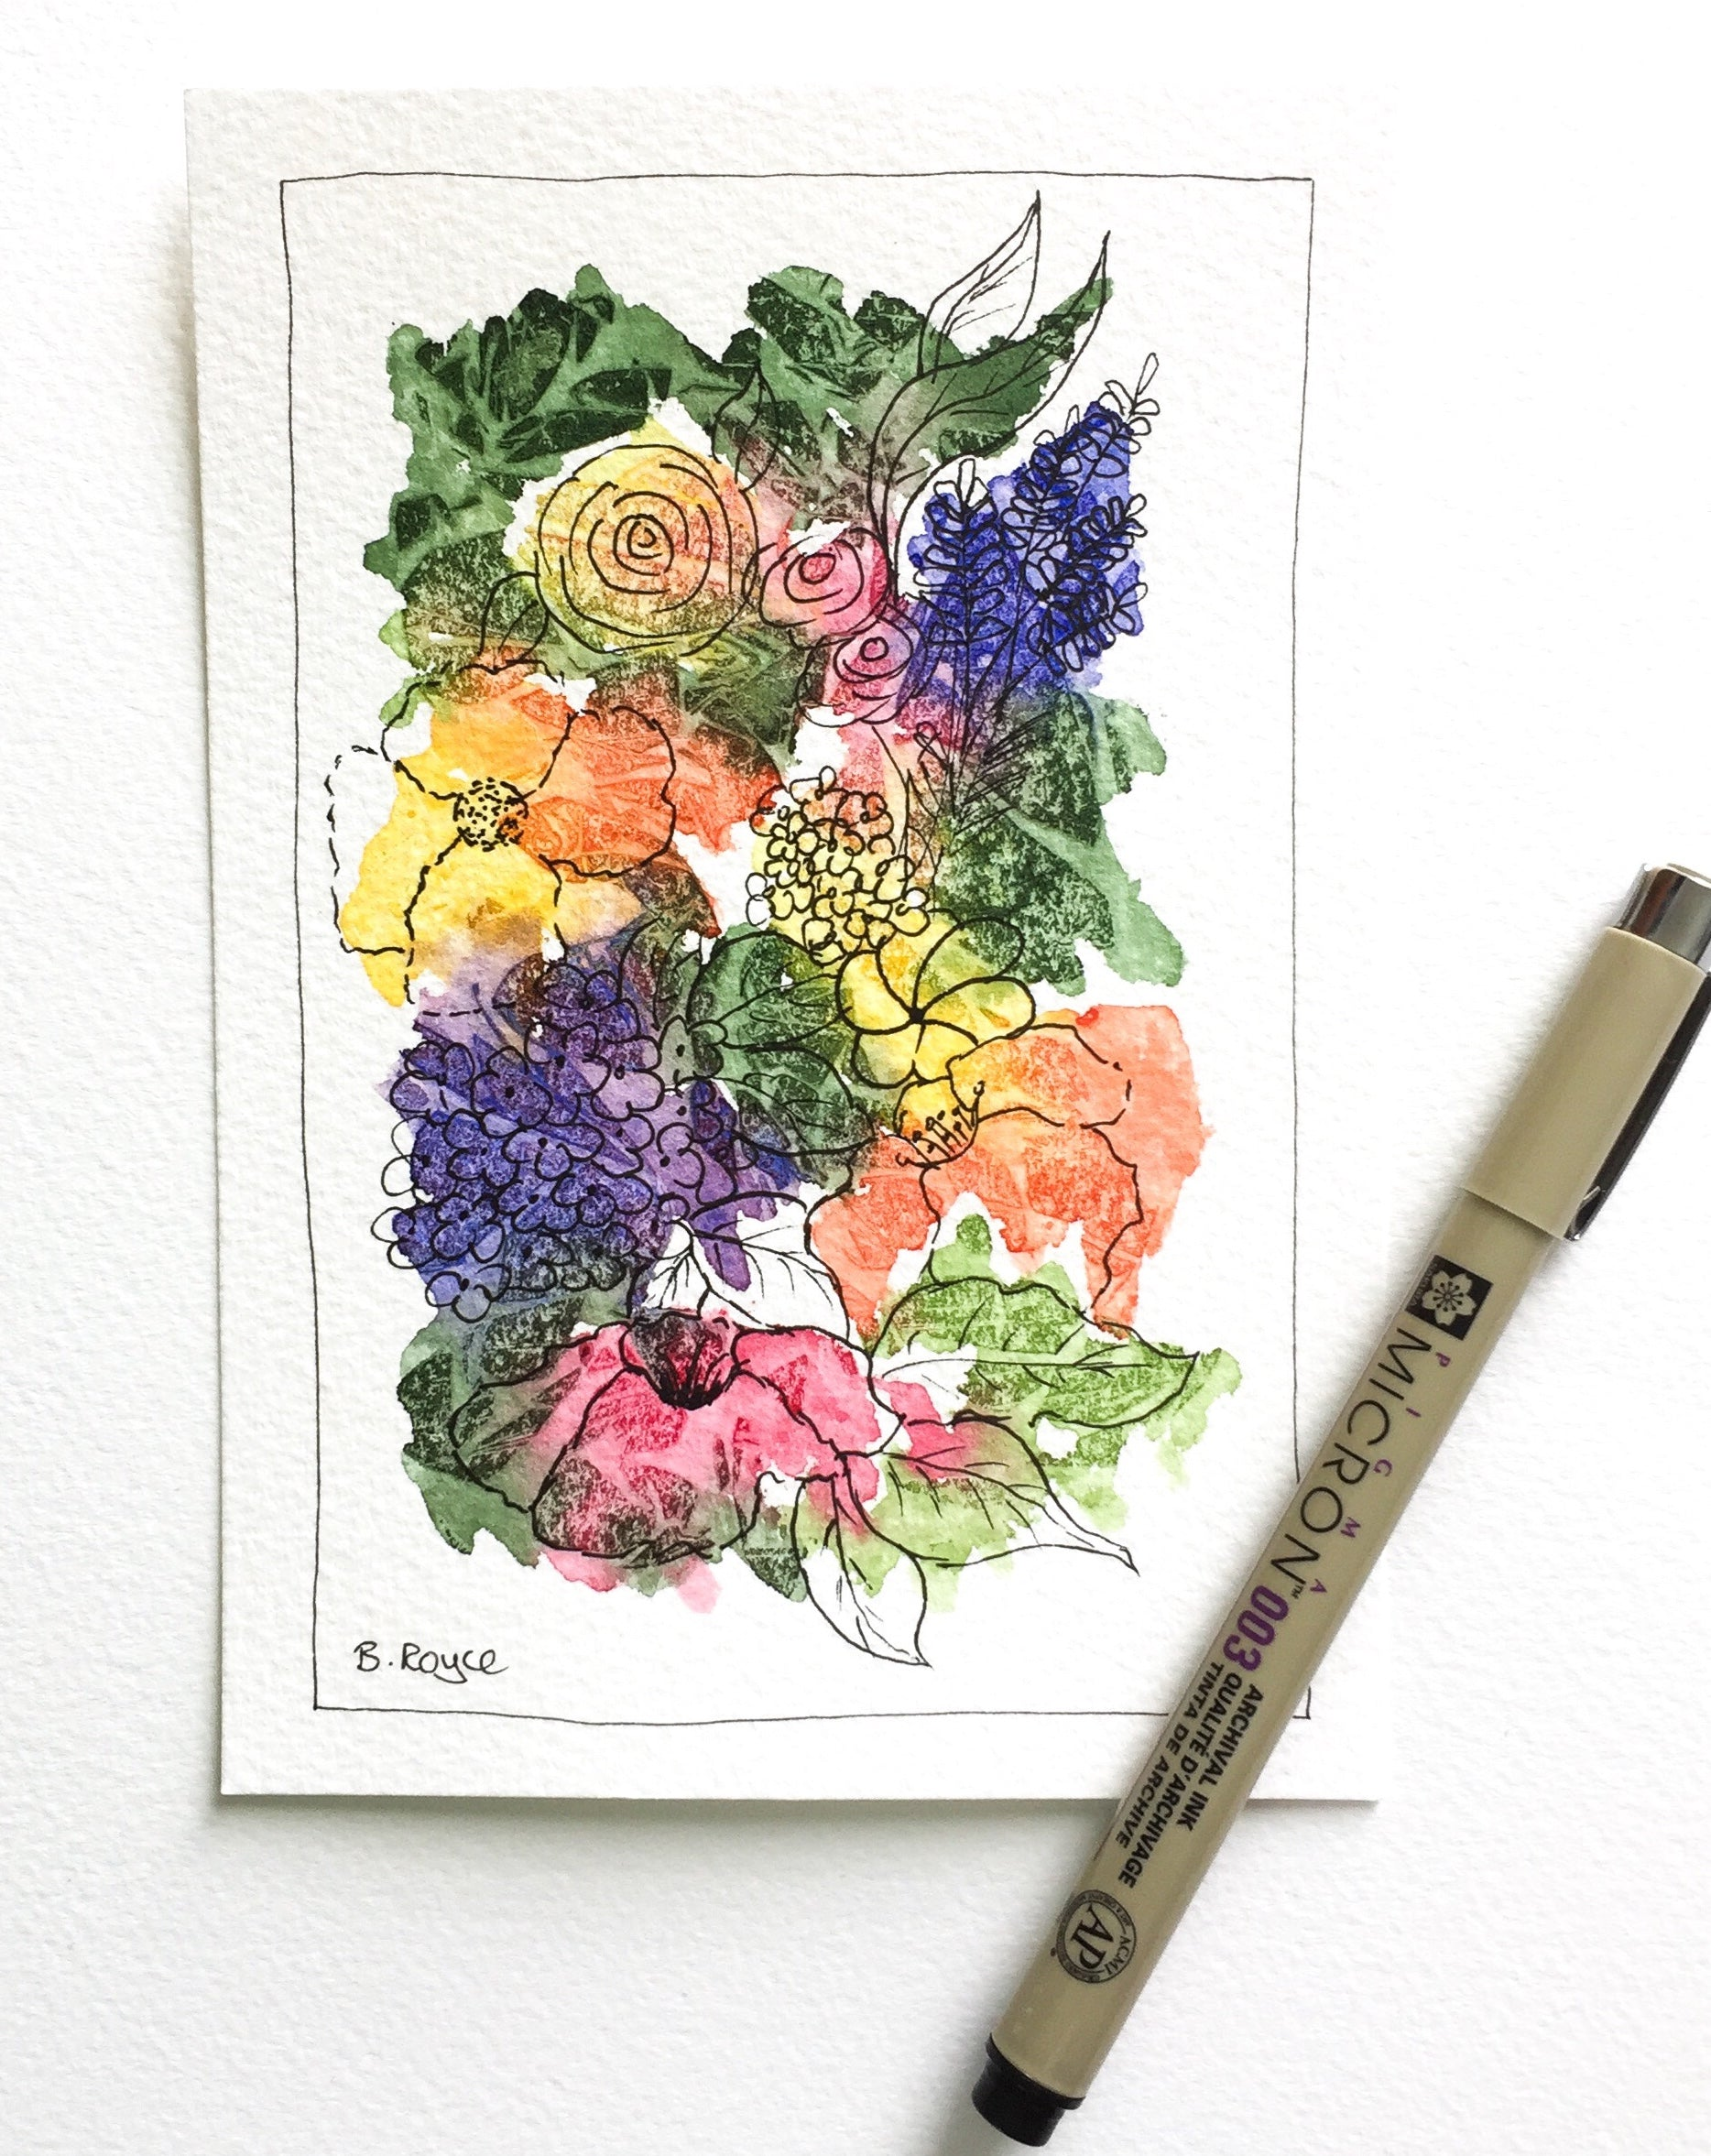 Abstract flowers with ink